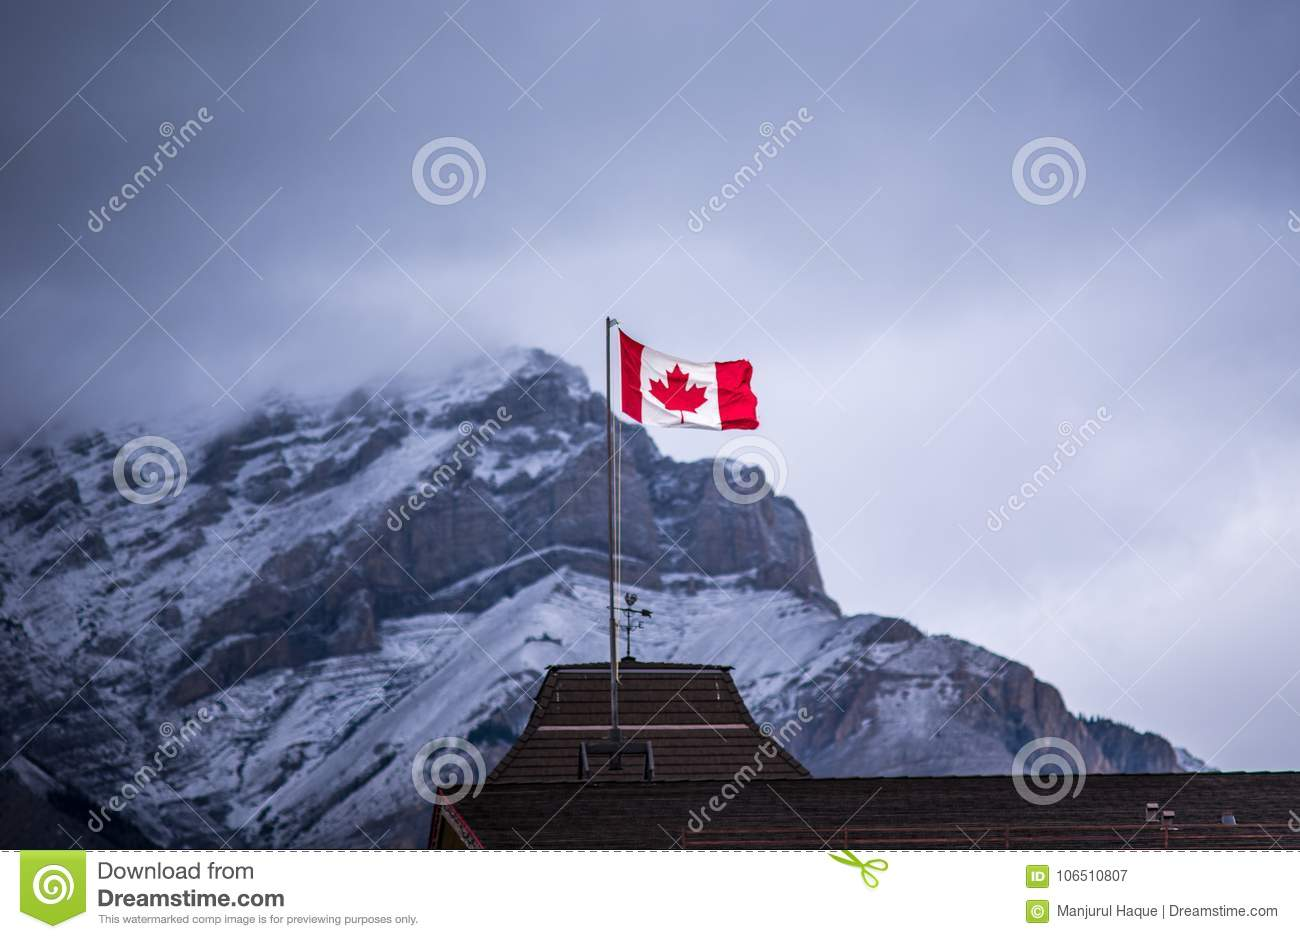 Canadian flag against snowy rocky mountain